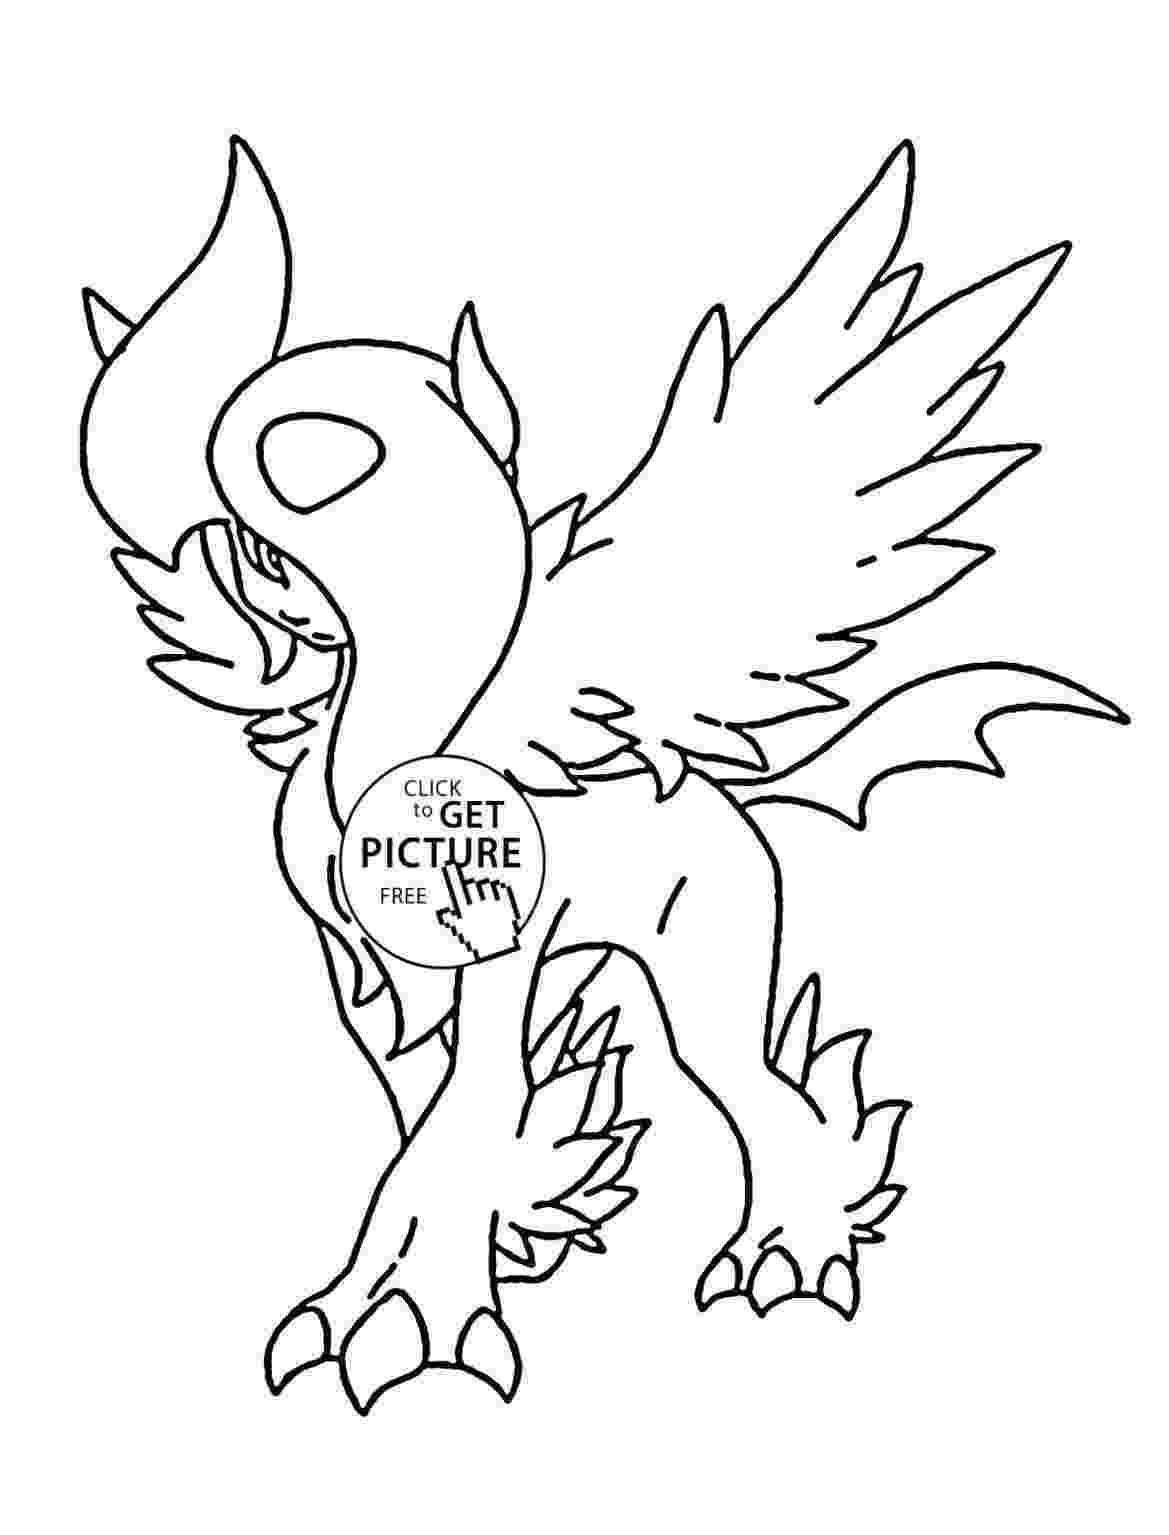 shaymin pokemon coloring pages pokemon shaymin pictures kids pokemon diamond pearl shaymin pokemon coloring pages